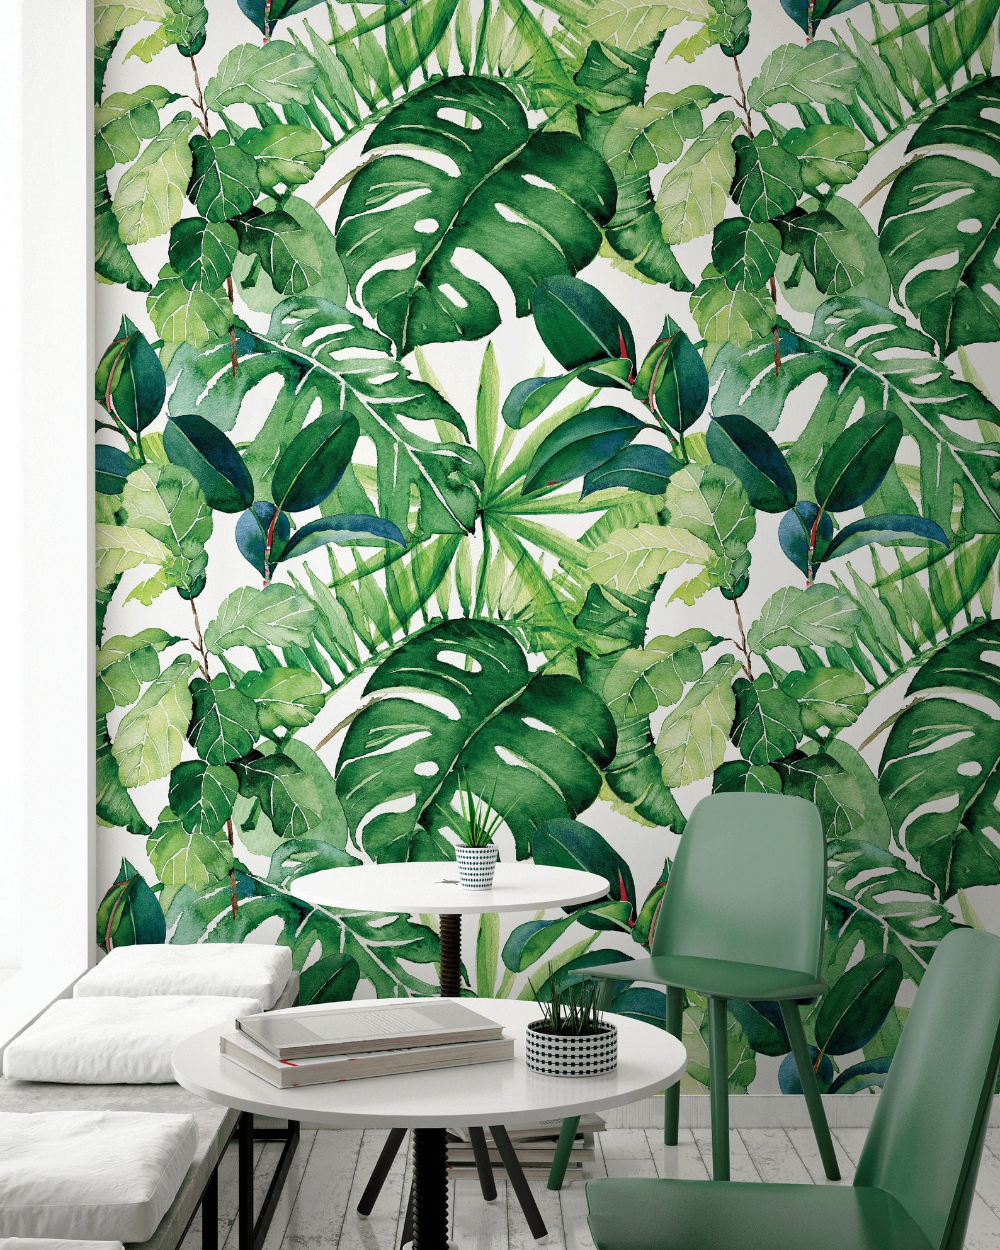 Removable Wallpaper Wall Mural Removable Wallpaper Tropical Etsy Wall Wallpaper Removable Wallpaper Wall Murals